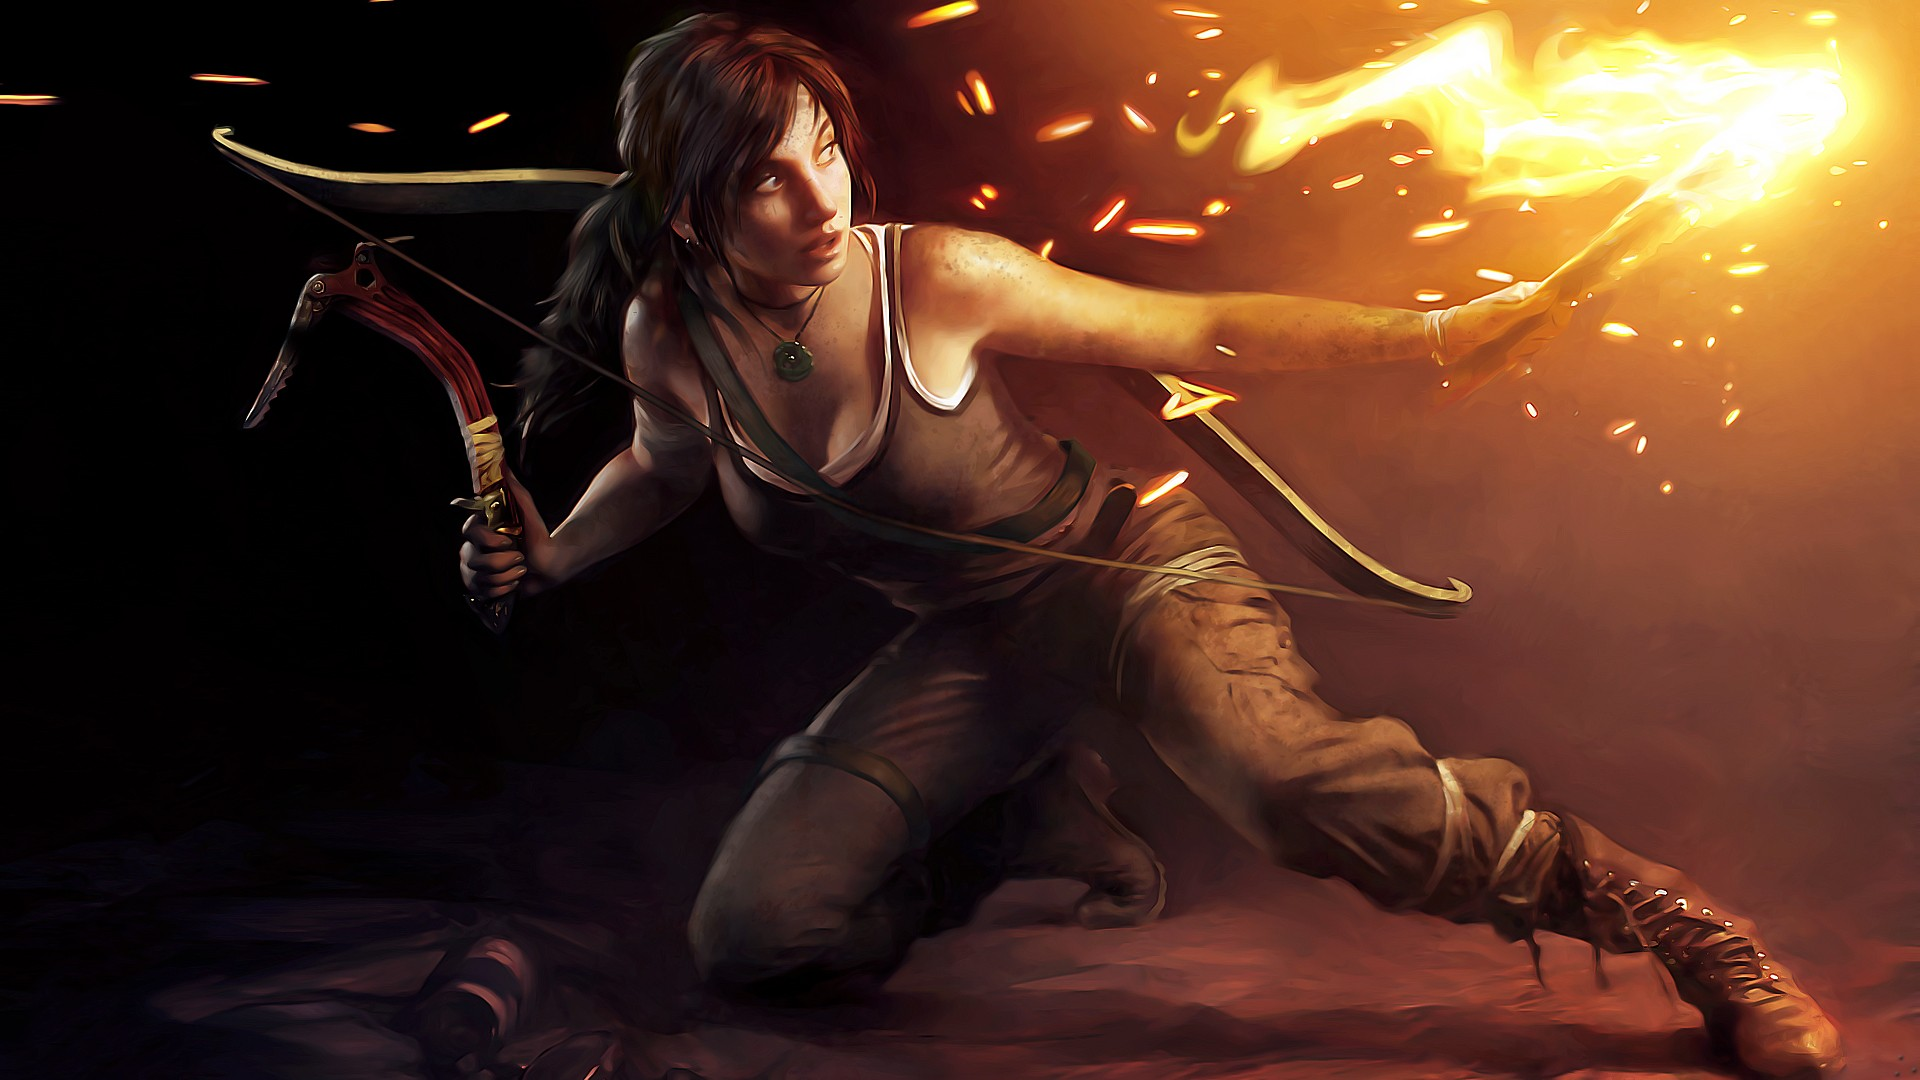 Lara Croft with a bow and a torch, art wallpapers